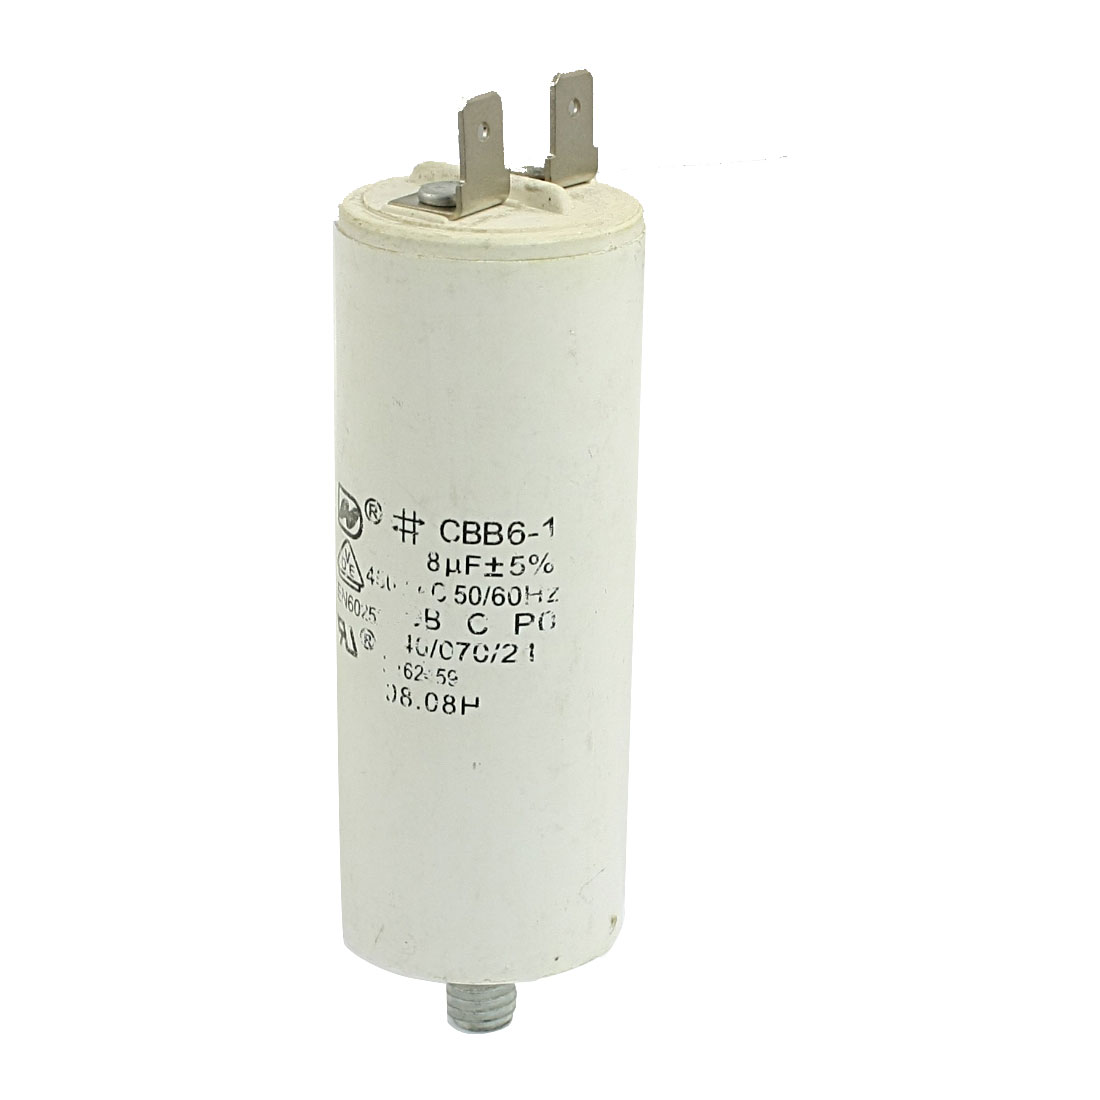 CBB6-1 8uF 450V Non Polar Polypropylene Film Screw Type Round Motor Run Capacitor